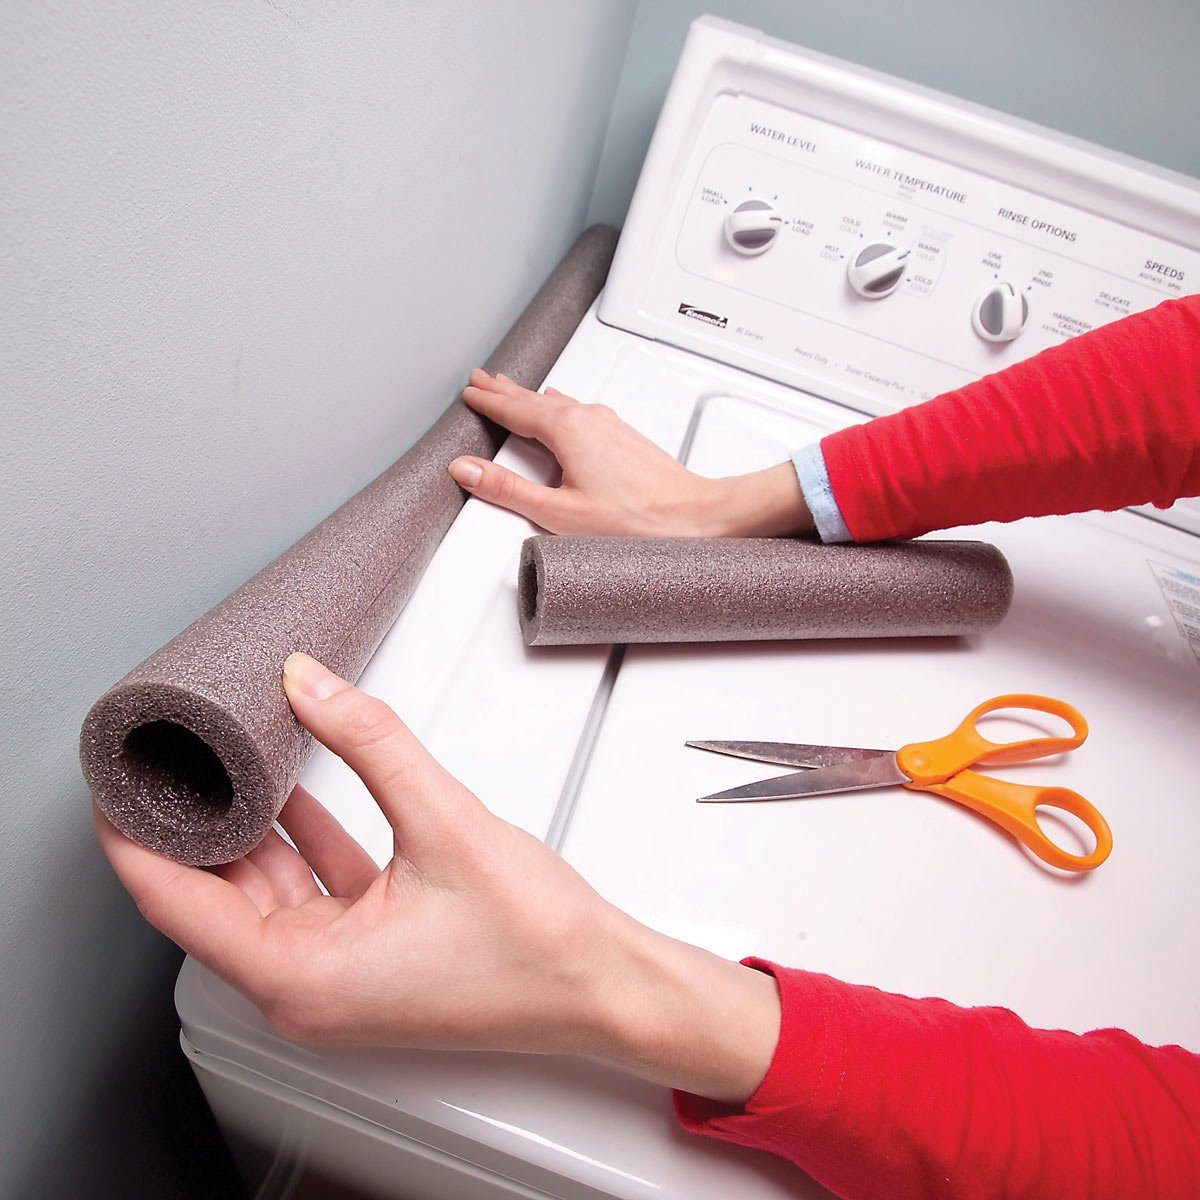 Putting a pool noodle on the side of the washer